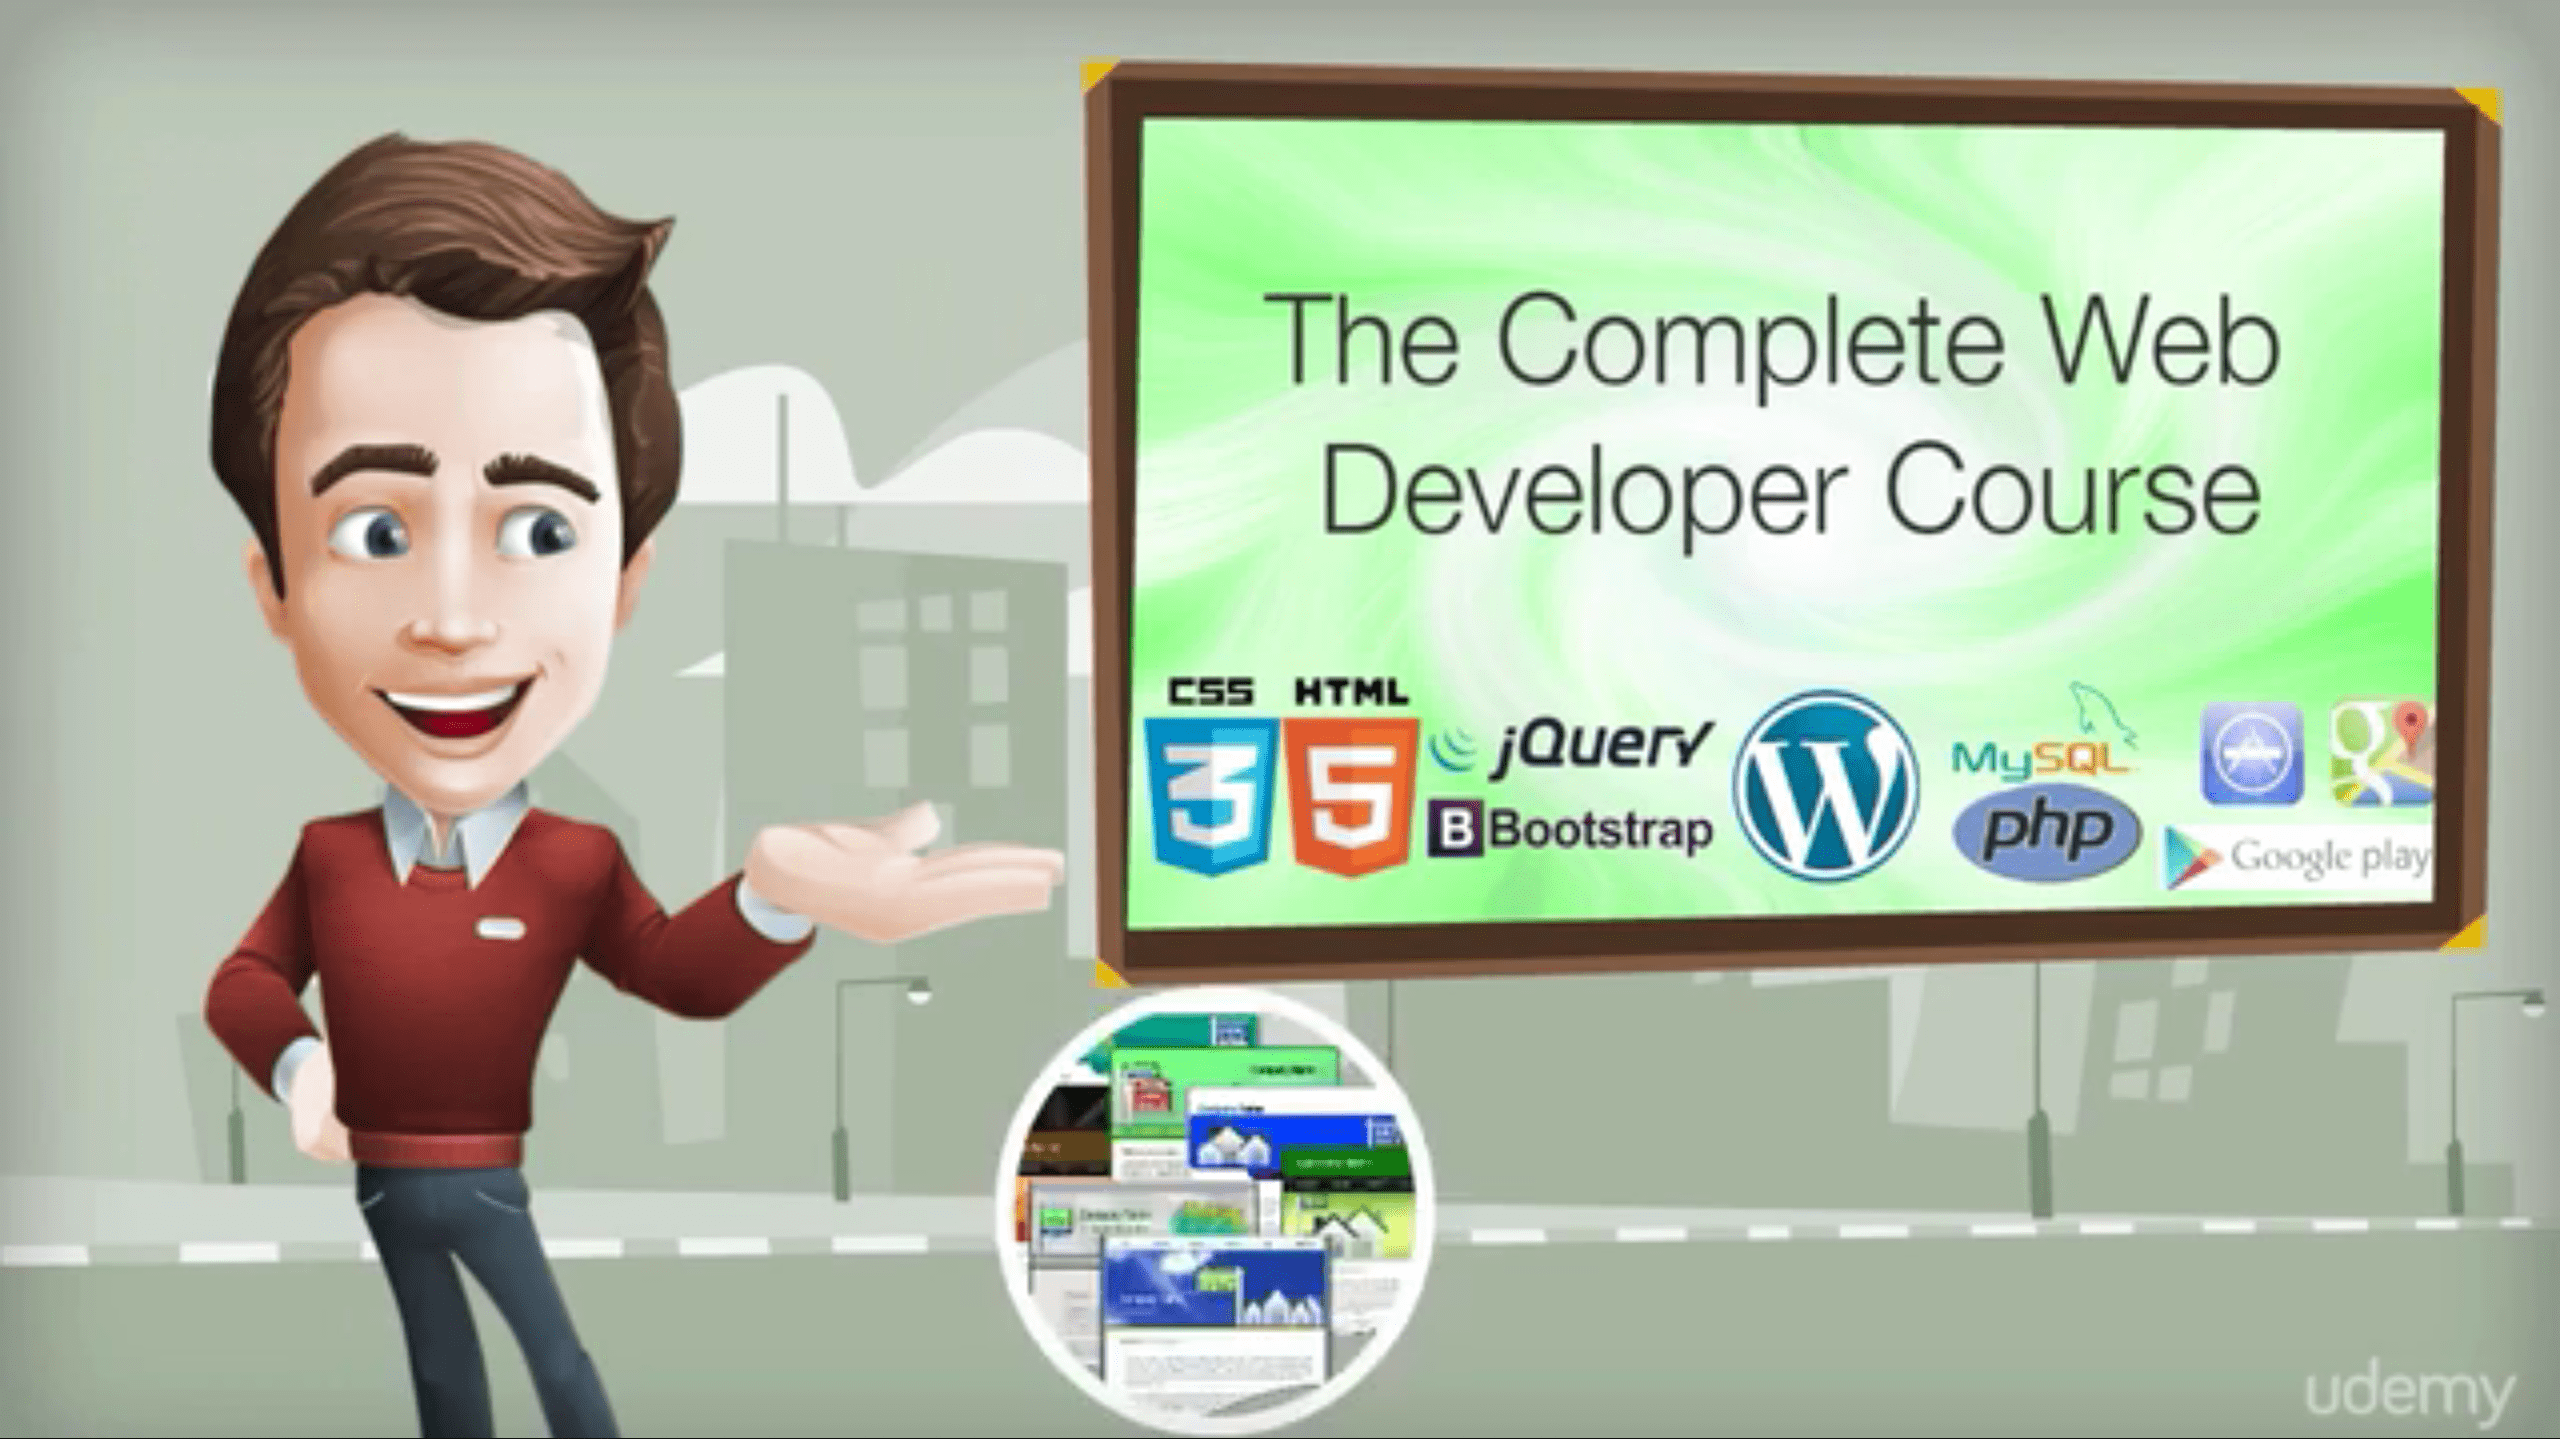 Udemy: The Complete Web Developer Course 2.0